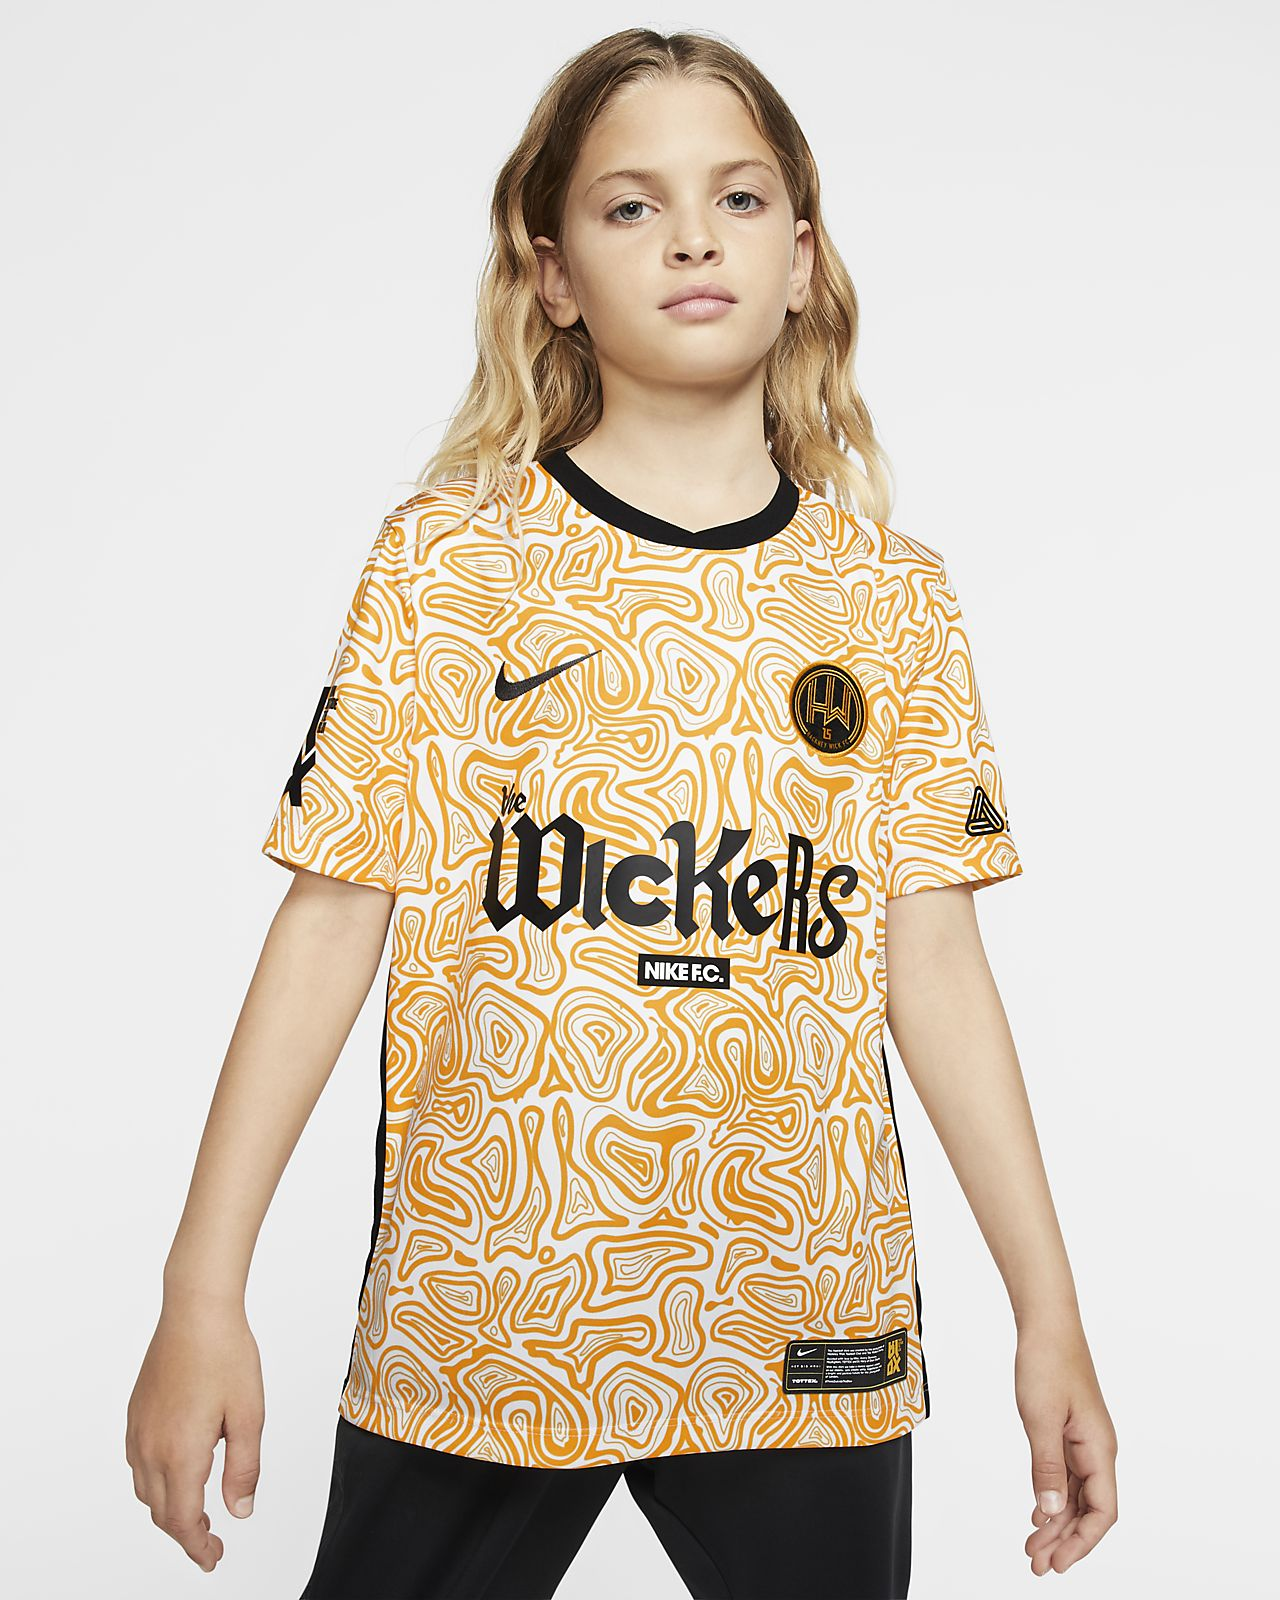 Maillot de football Hackney Wick FC Away pour Enfant plus âgé